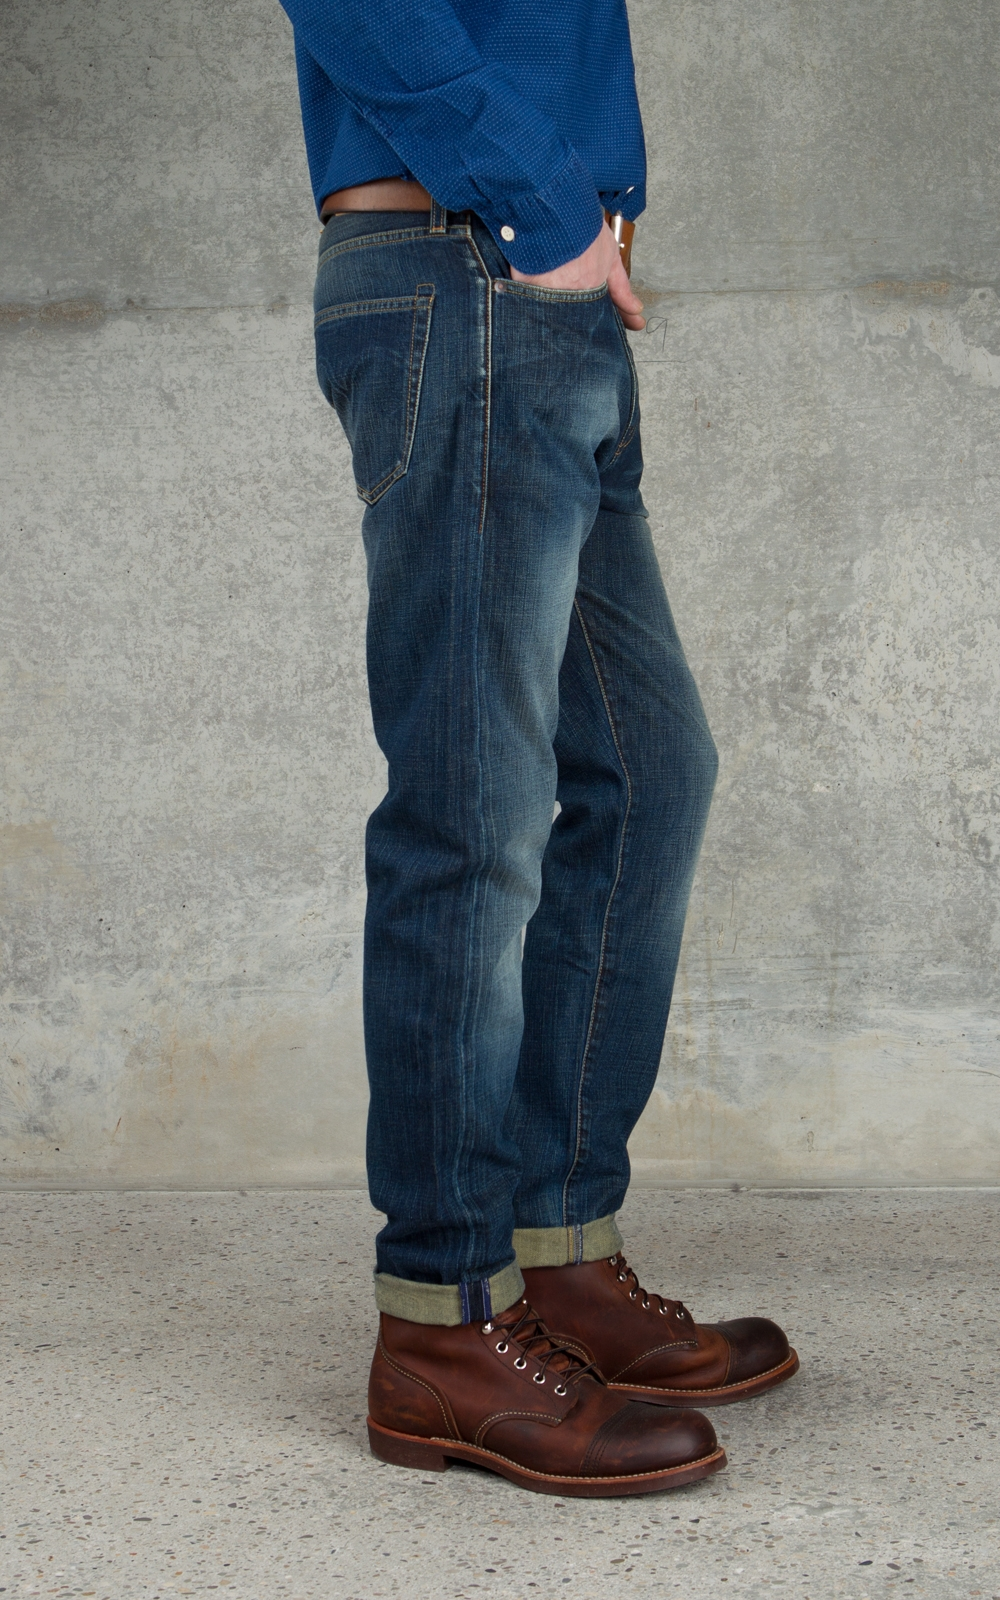 Cari jeans levi 39 s made crafted shuttle jeans second wave for Made and crafted shuttle